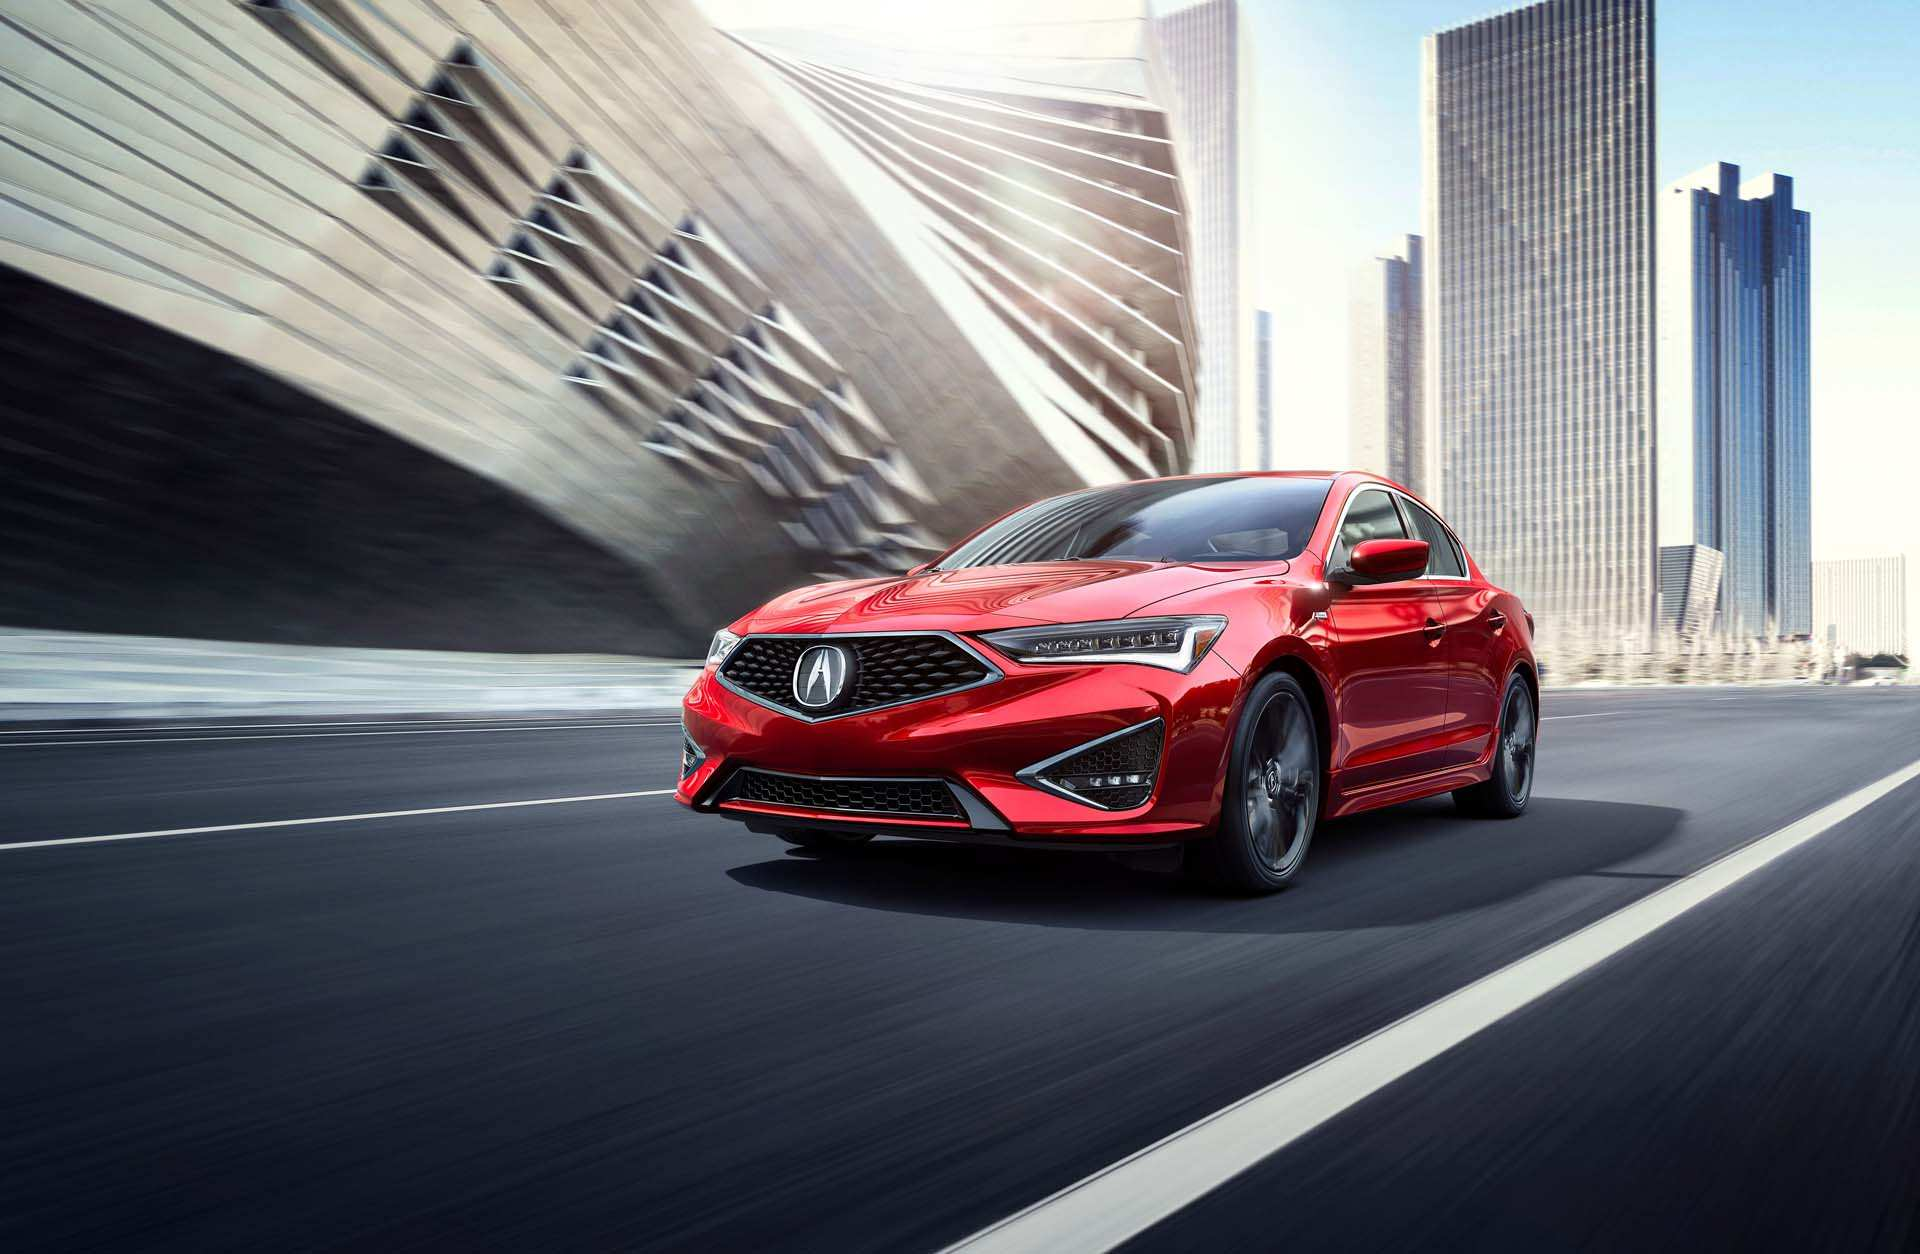 45 Great 2020 Acura Ilx Redesign Reviews by 2020 Acura Ilx Redesign